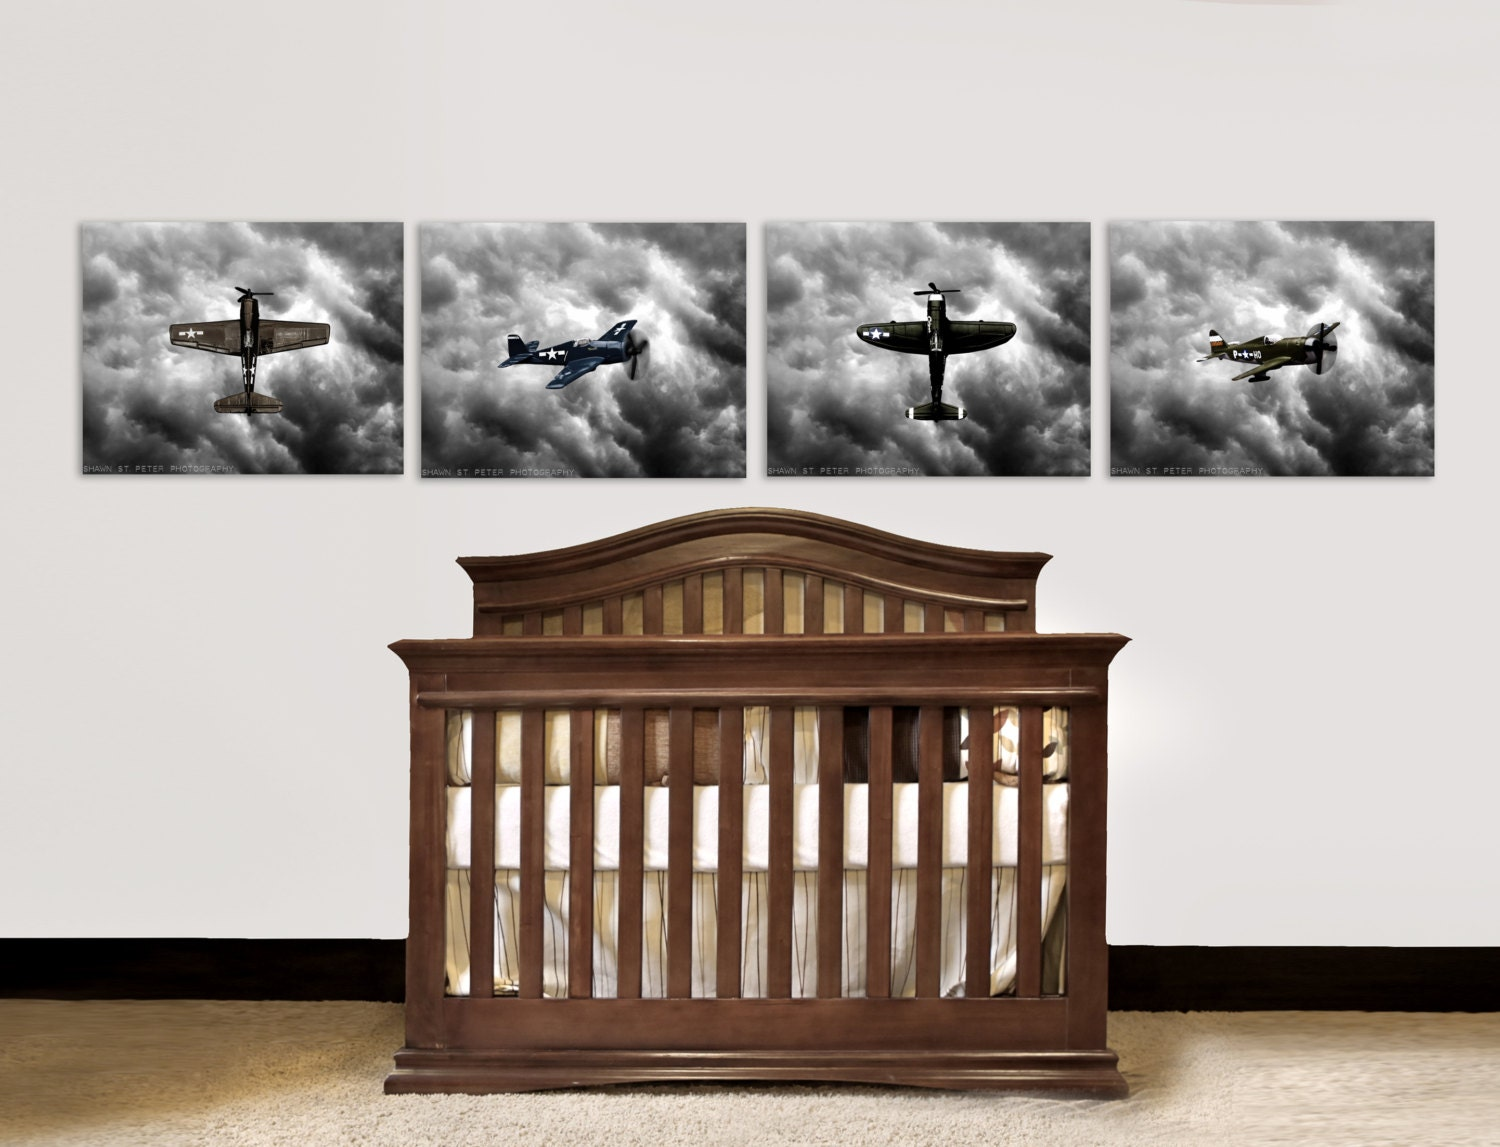 Nursery Decor Vintage Airplanes Baby Room Ideas Vintage